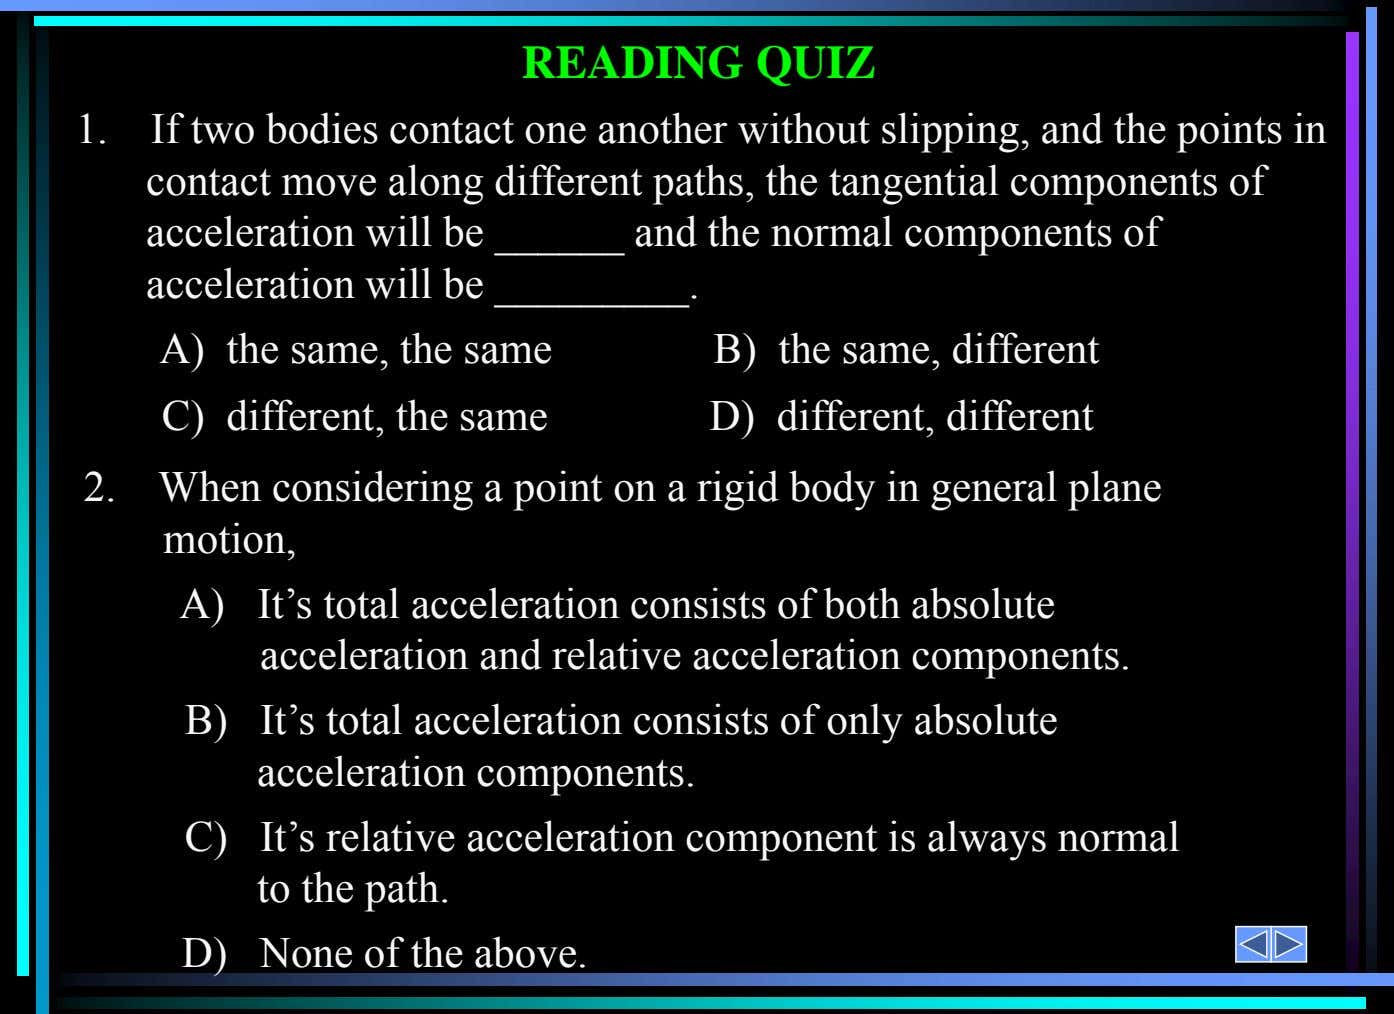 1. If two bodies contact one another without slipping, and the points in contact move along